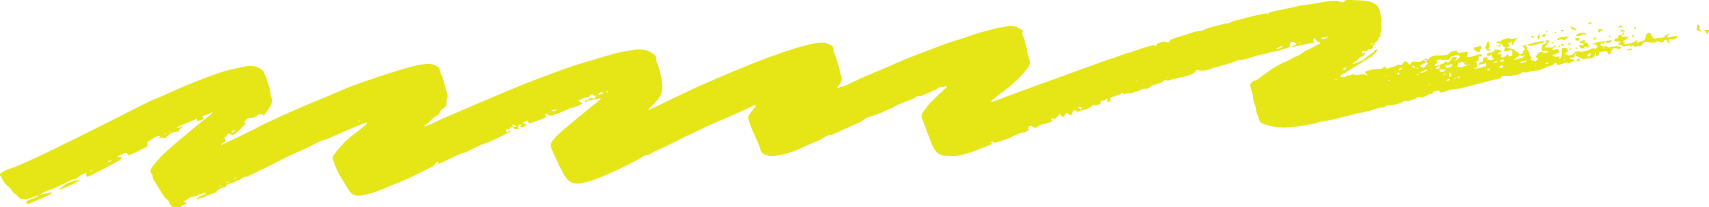 scribble-yellow1